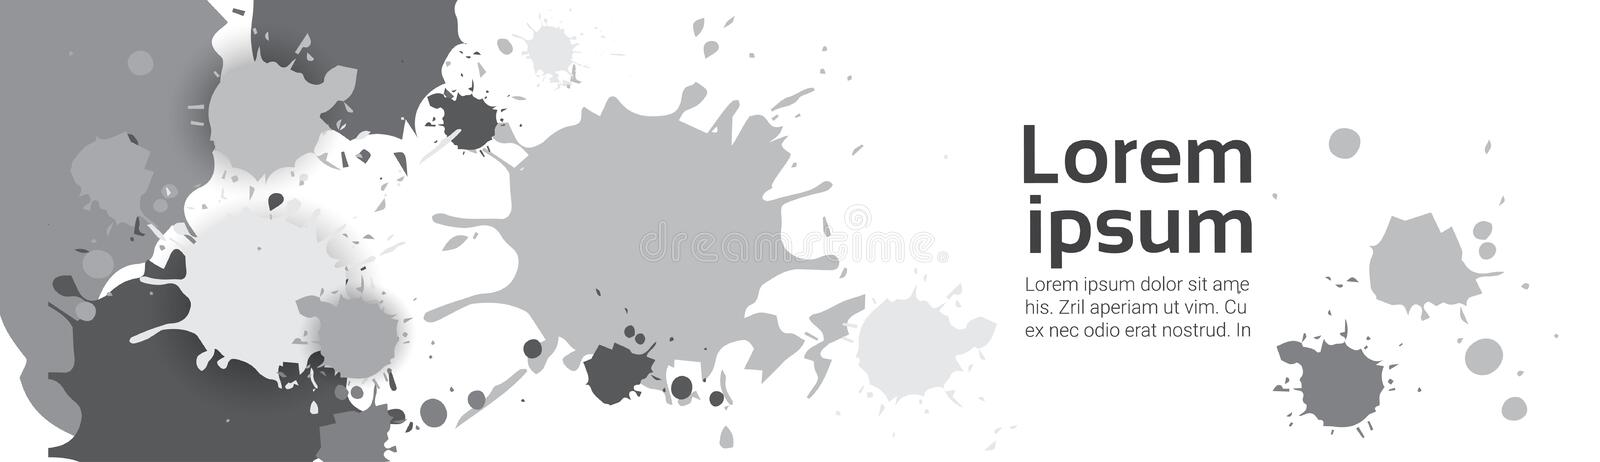 Abstract Gray Paint Splash Set Over White Background For Copy Space And Text royalty free illustration